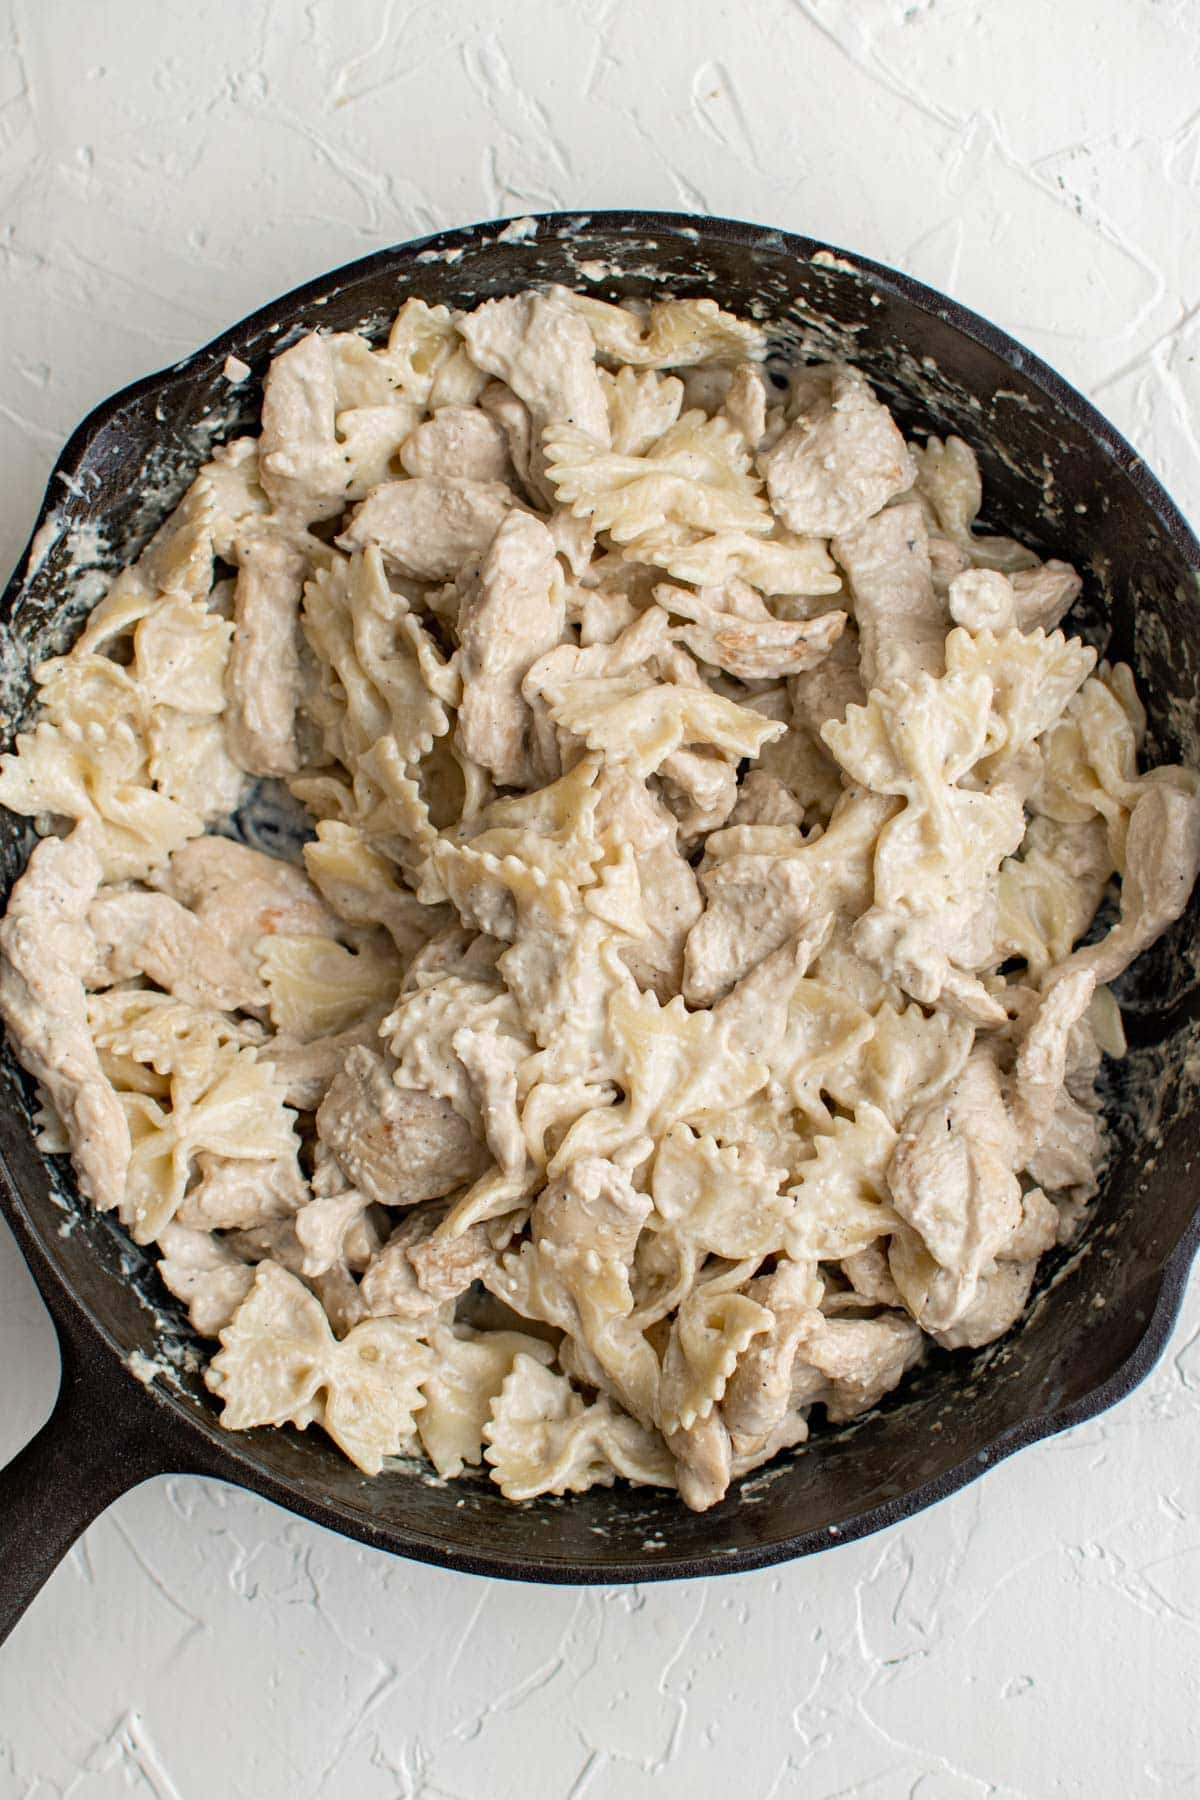 chicken and pasta in creamy sauce, cast iron skillet